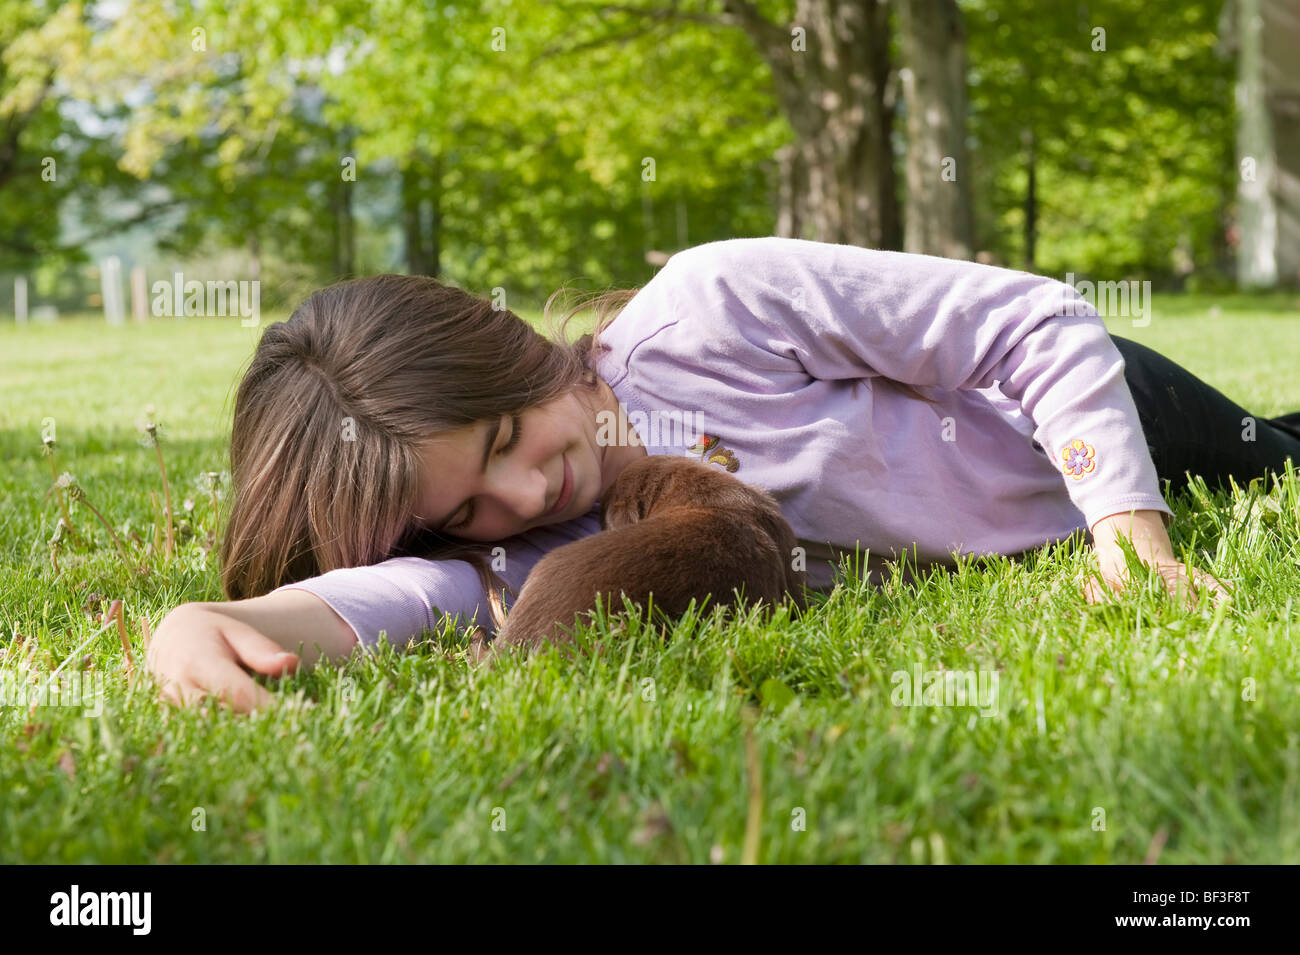 Adolescent cuddling puppy - Stock Image